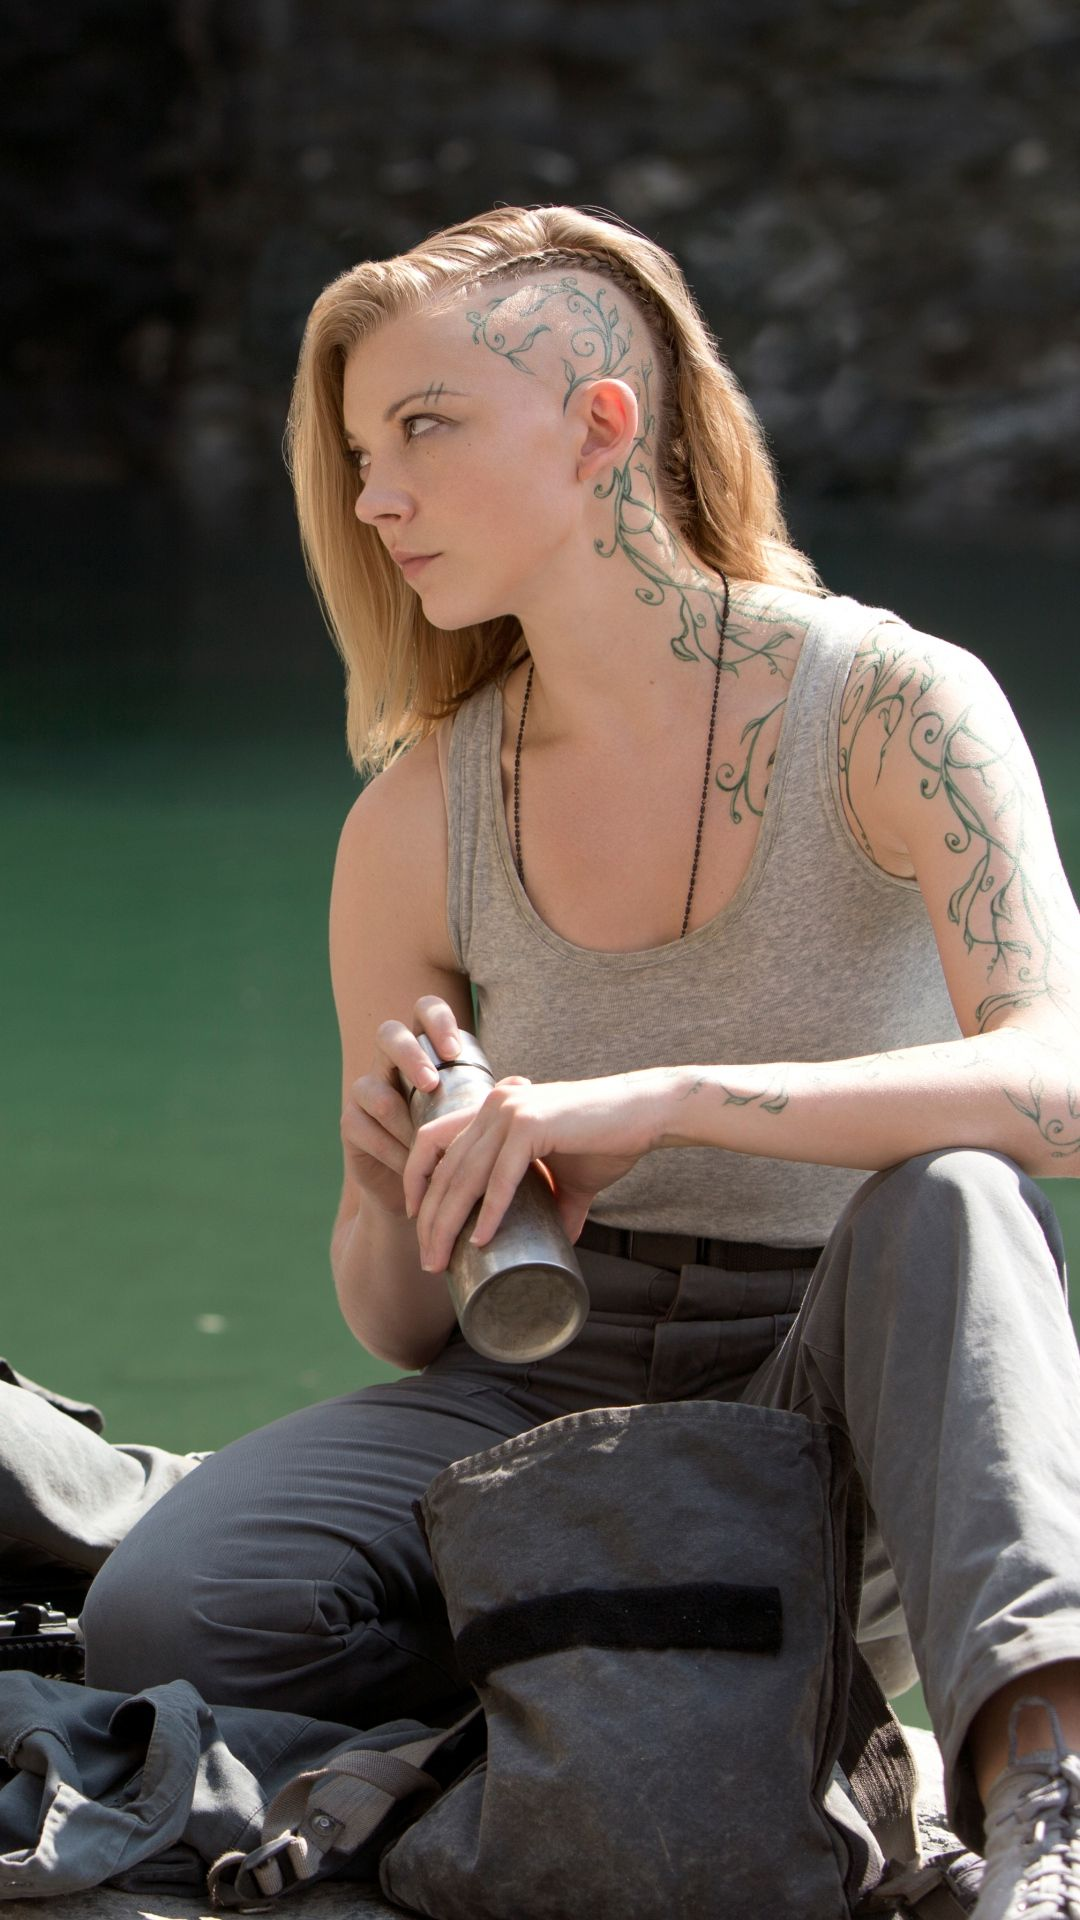 Discussion on this topic: Scarlett johansson ass, natalie-dormer-nude-boobs-and-tattooed-body/